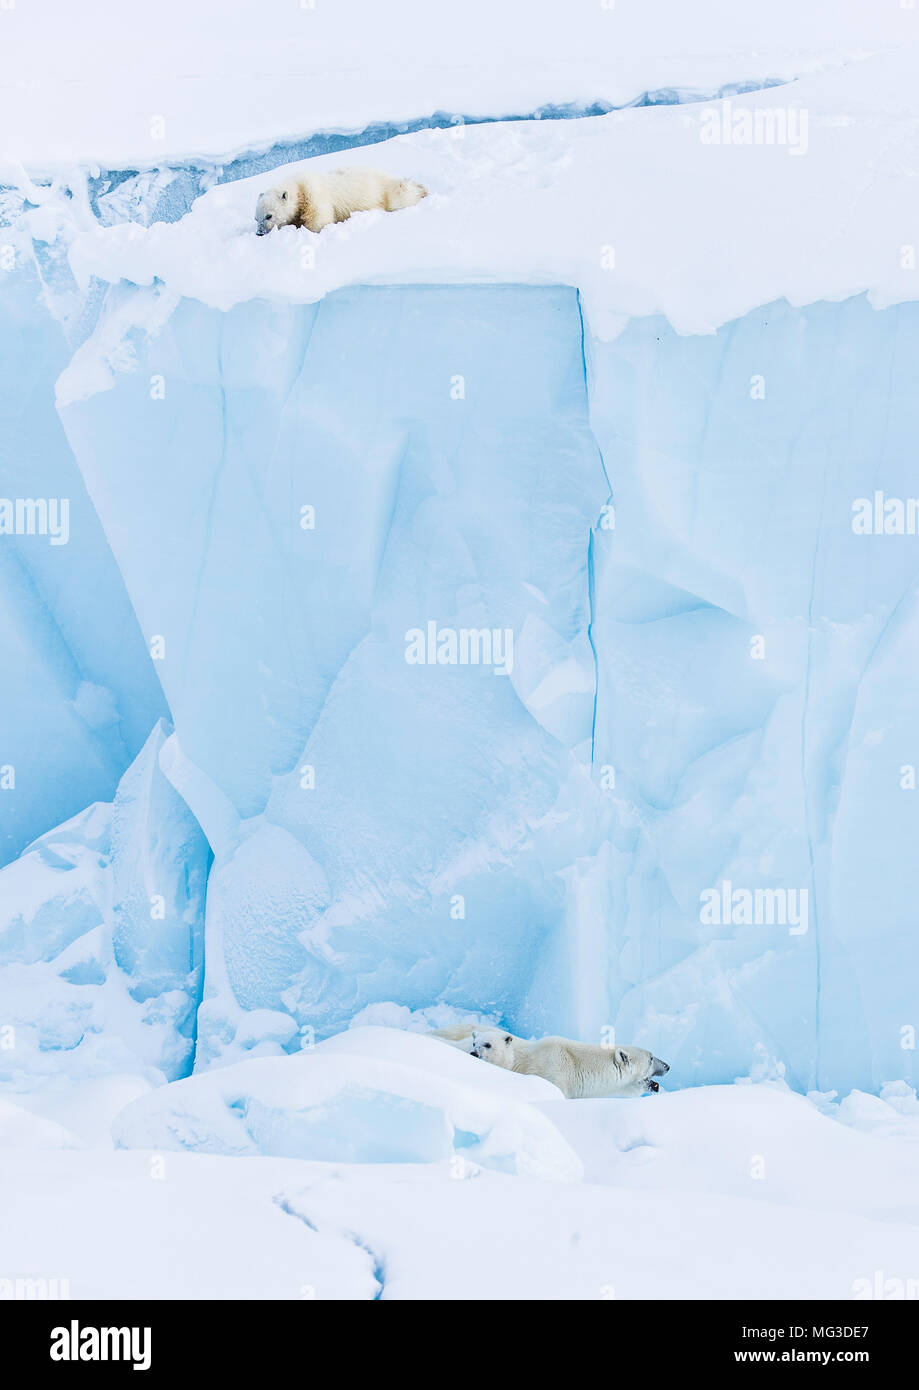 Polar bear cube seperated from mother and sibling looks down from the top of an iceberg - Stock Image